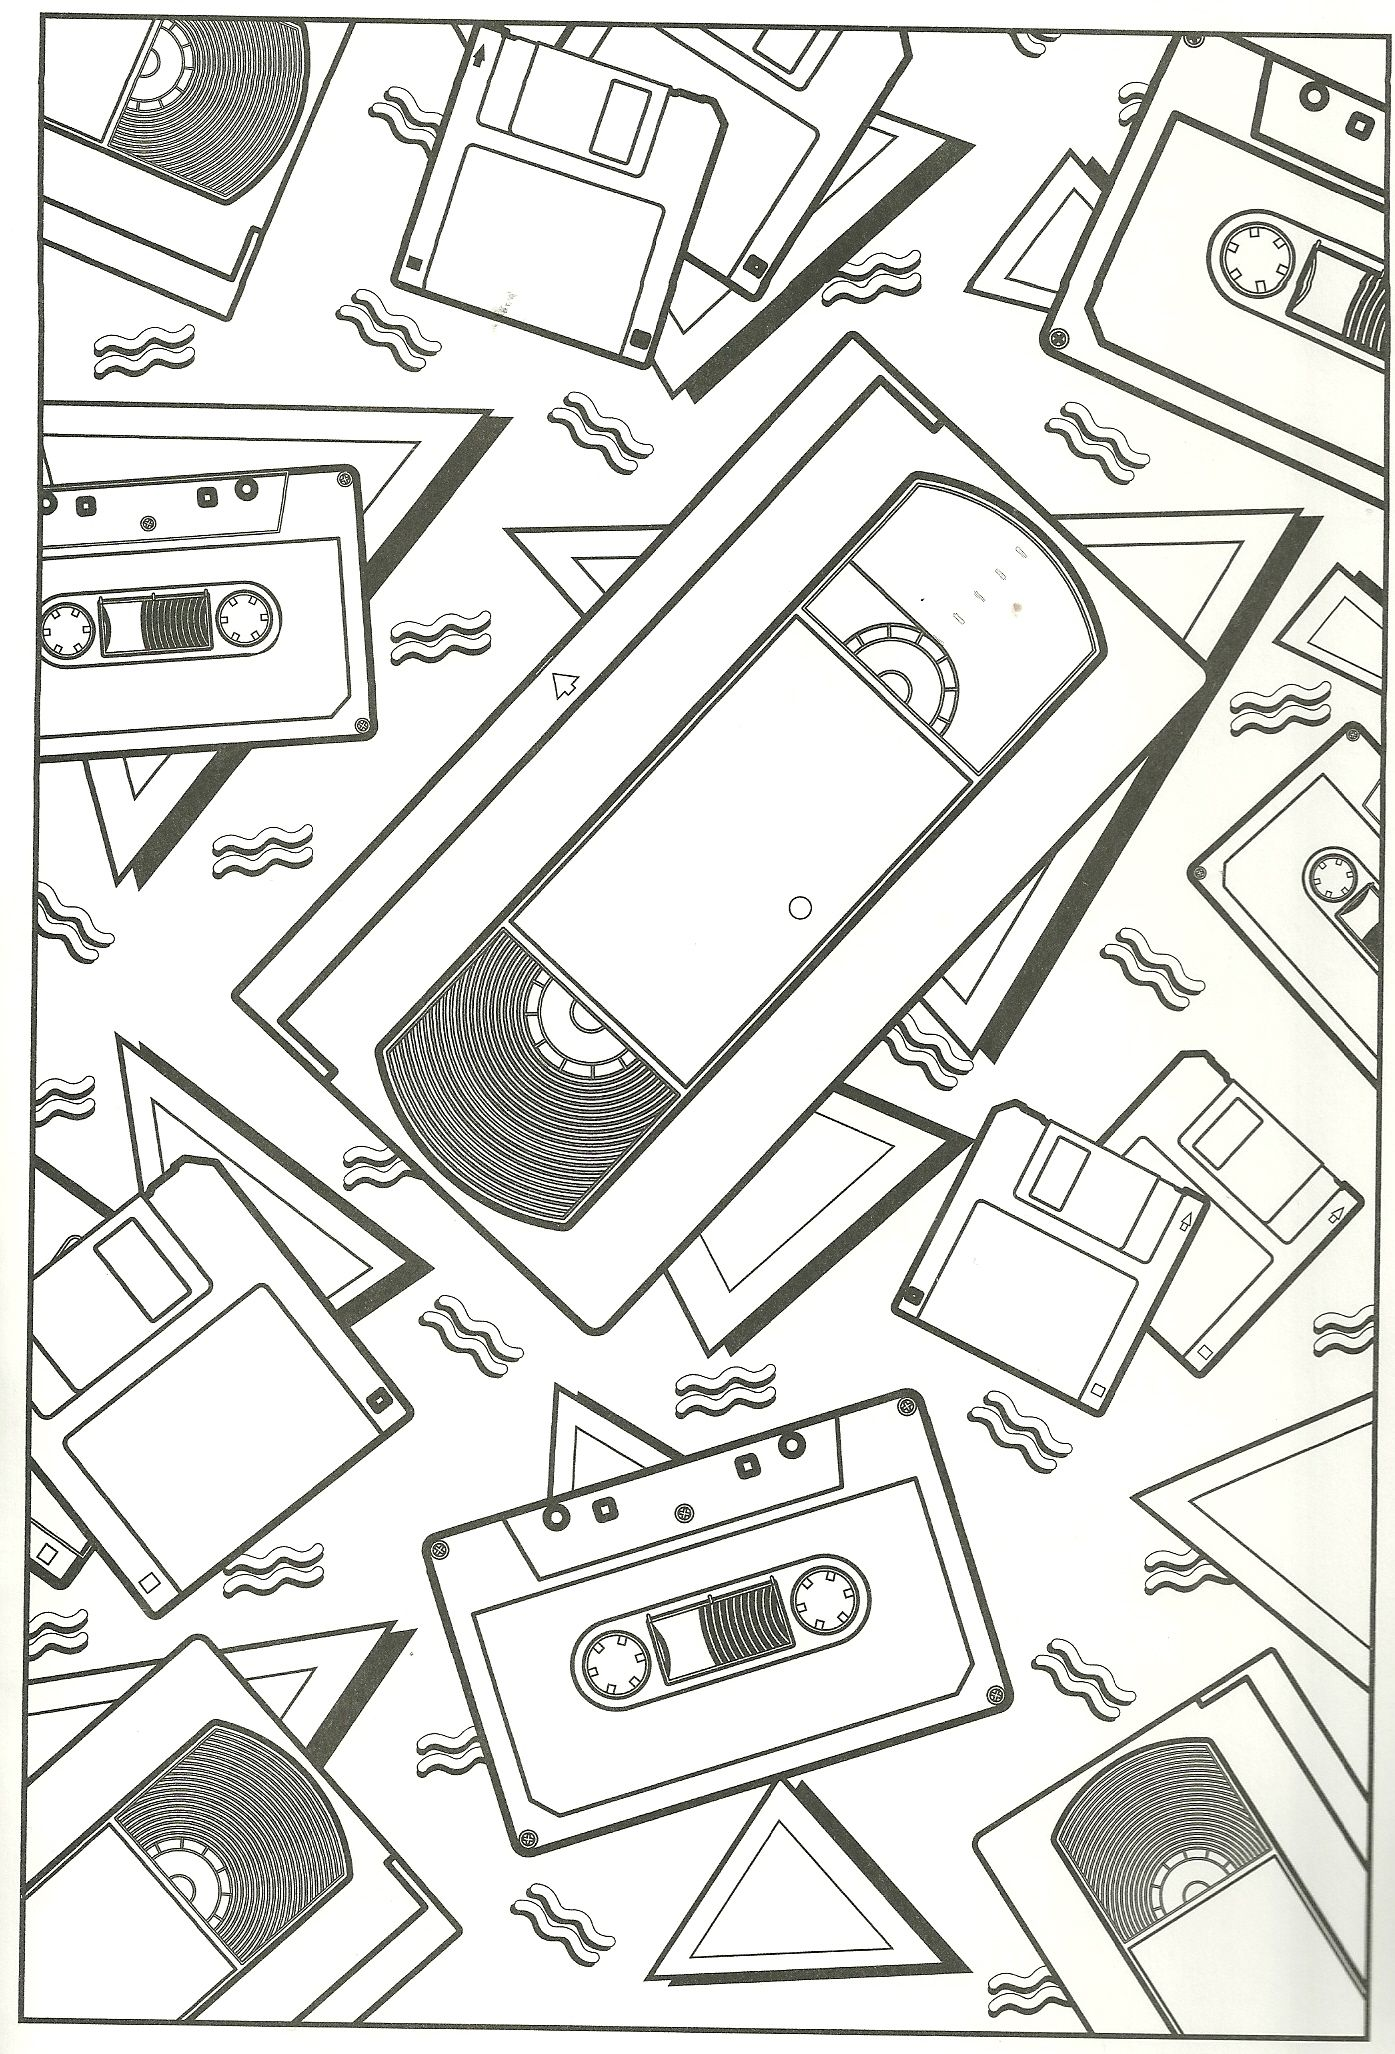 Floppy Disc Caasette And Vhs Tape Coloring Page Coloring Pages